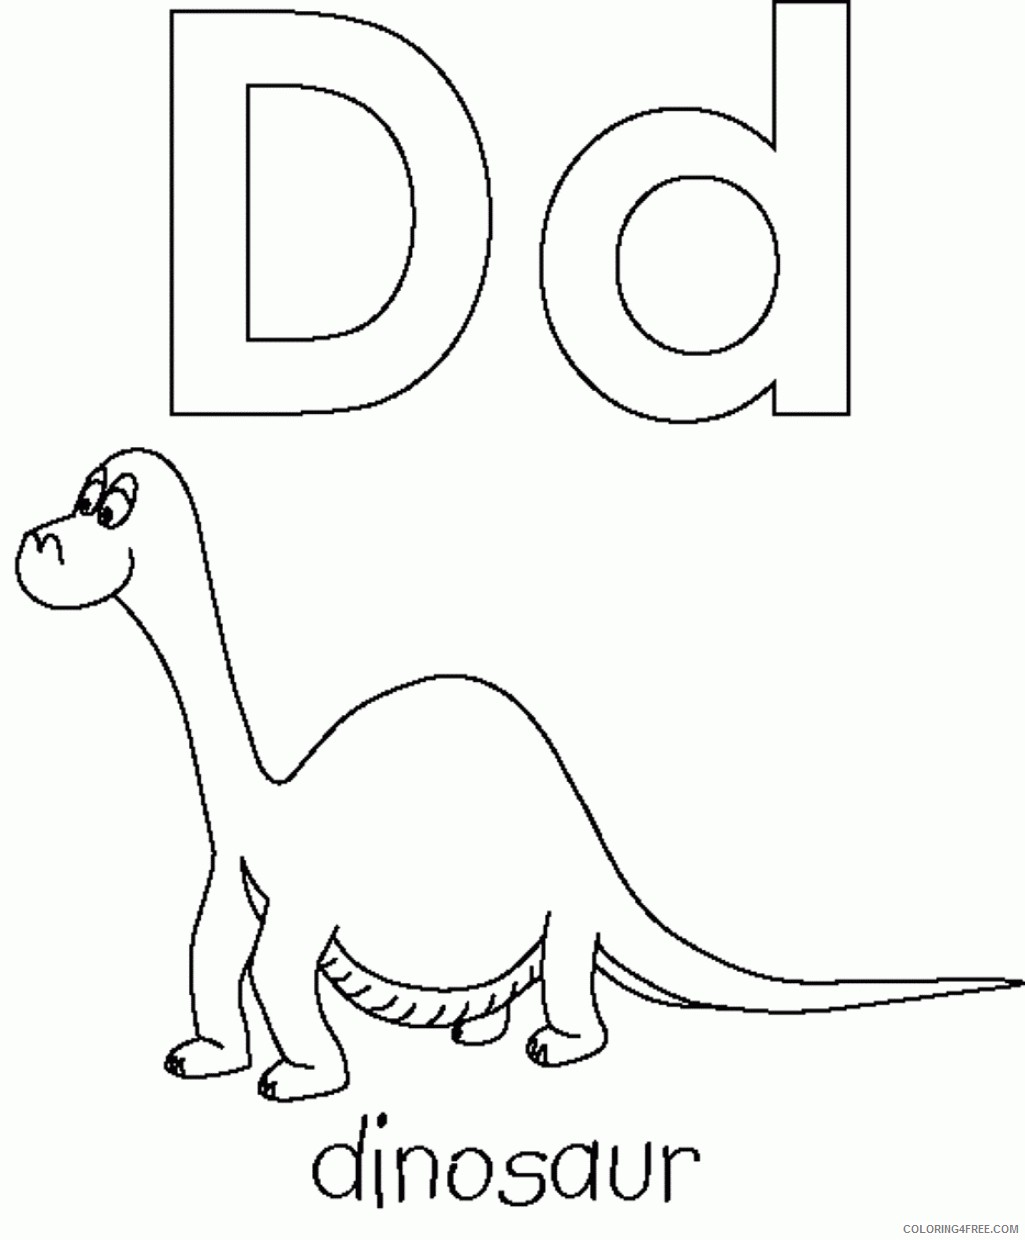 abc coloring pages d for dinosaur Coloring4free